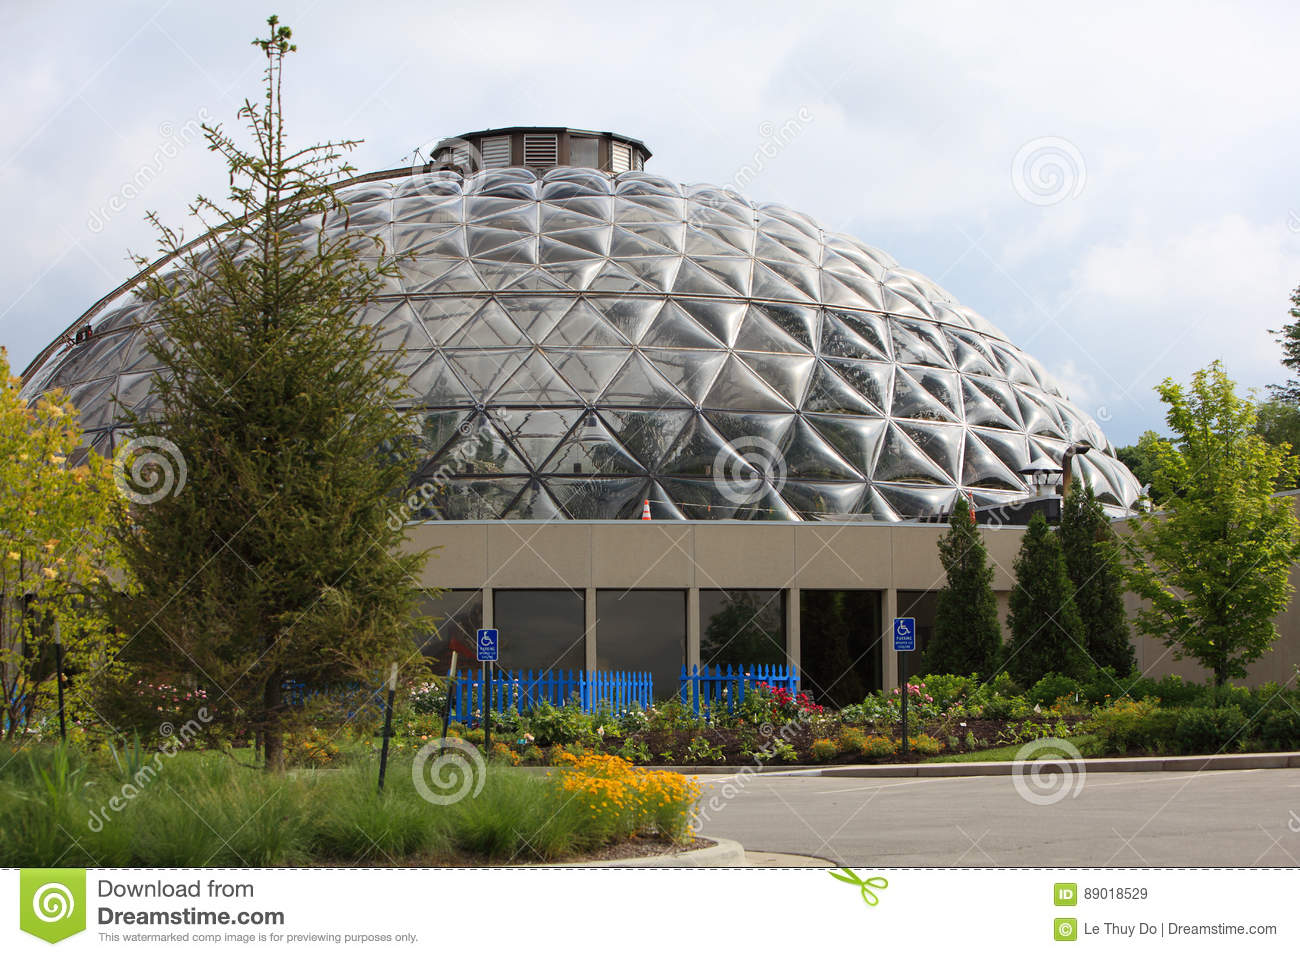 download des moines botanical garden stock image image of park tourist 89018529 - Greater Des Moines Botanical Garden